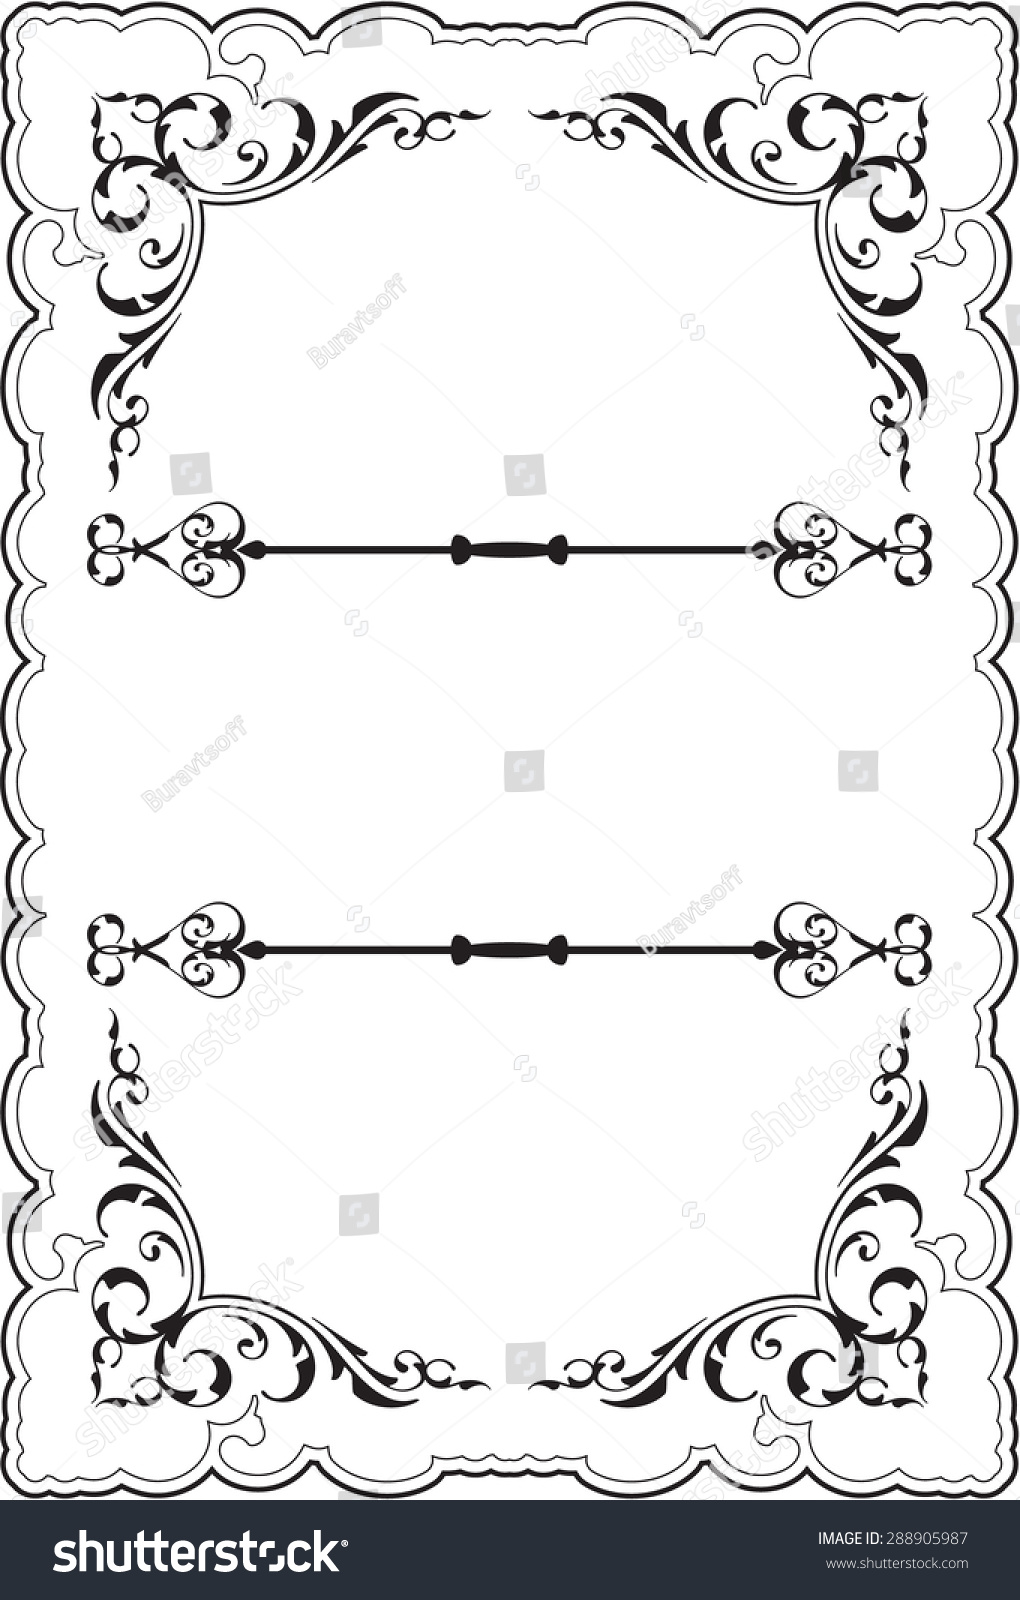 Scrolling ornate perfect frame on white | EZ Canvas